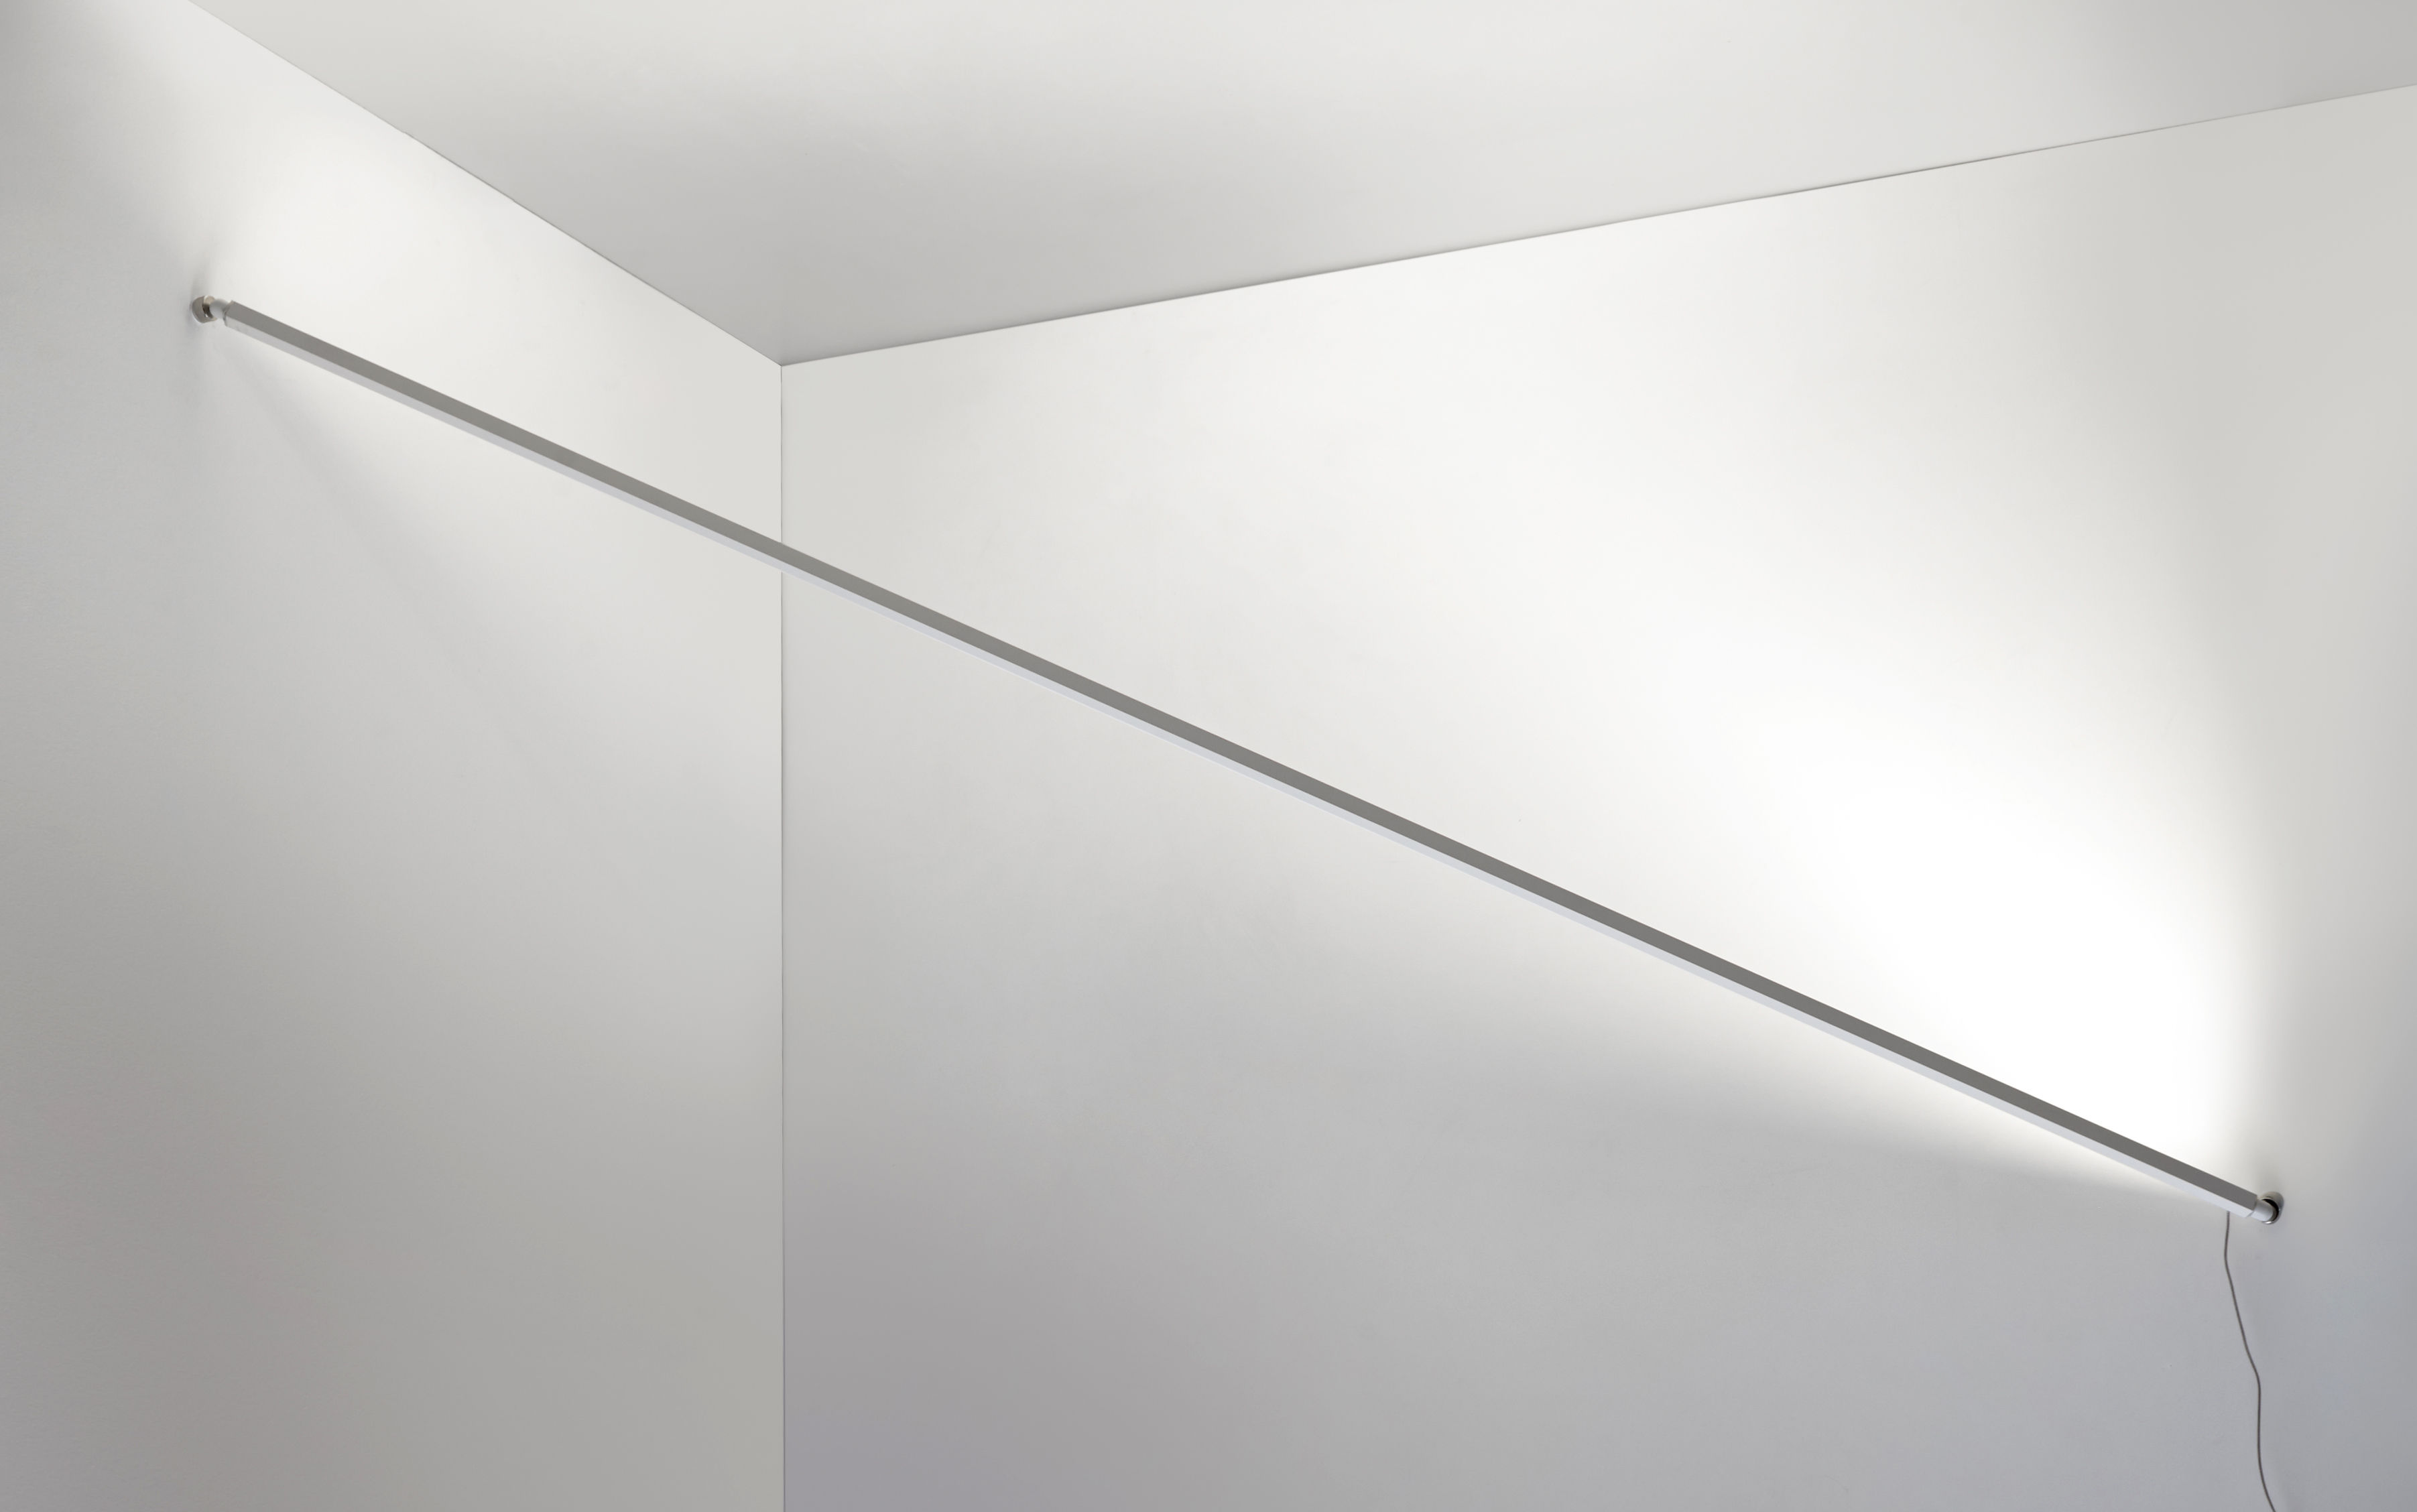 Scopri Applique Flashit -/ LED - L 150 cm, Bianco di Artemide, Made In Design Italia